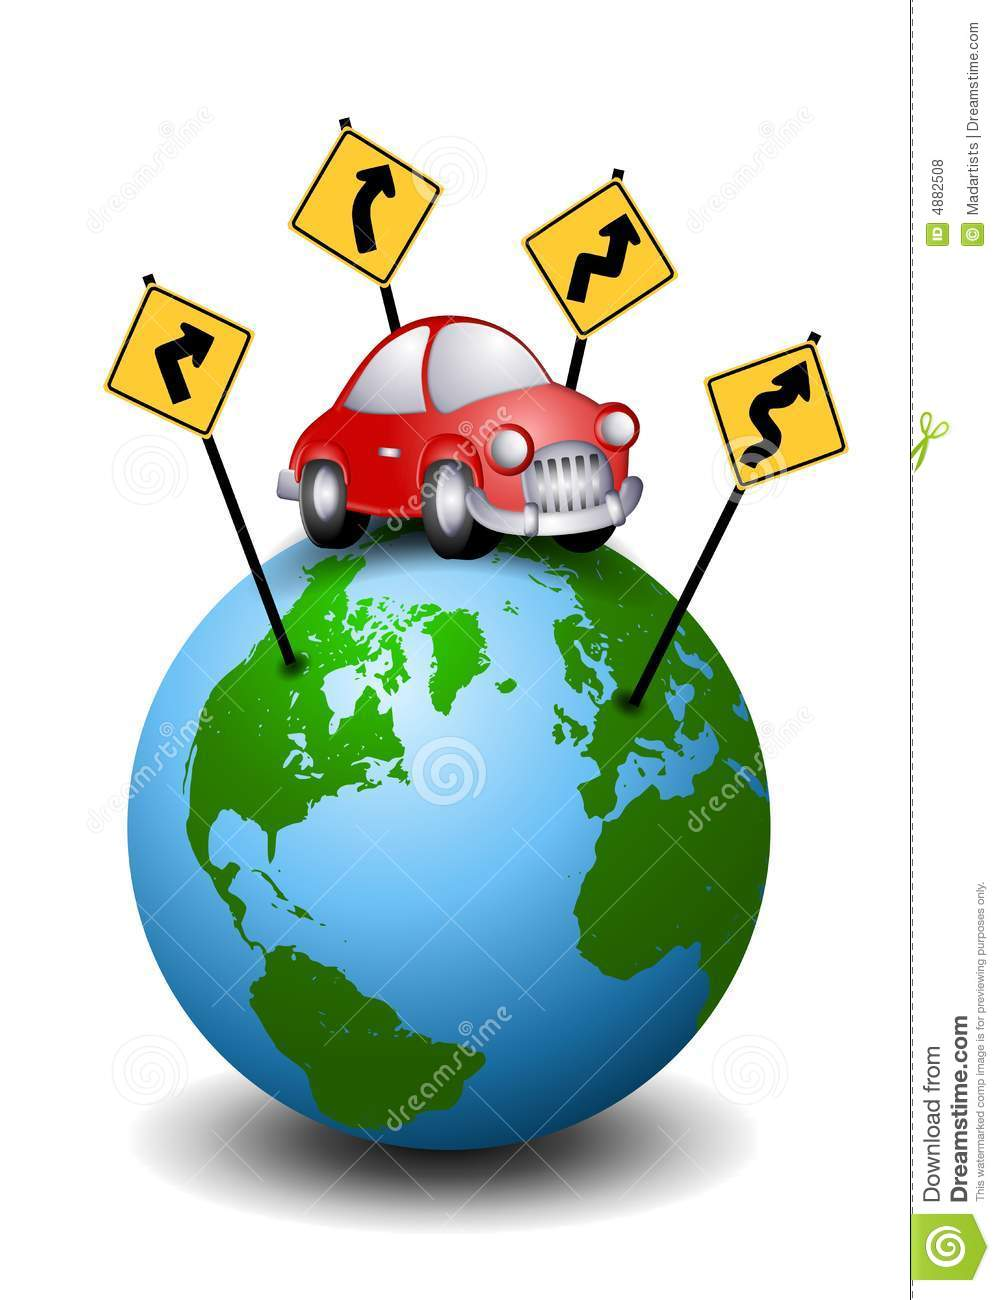 Road trip map clipart svg free Road Trip Travel Directions Royalty Free Stock Photos - Image: 4882508 svg free